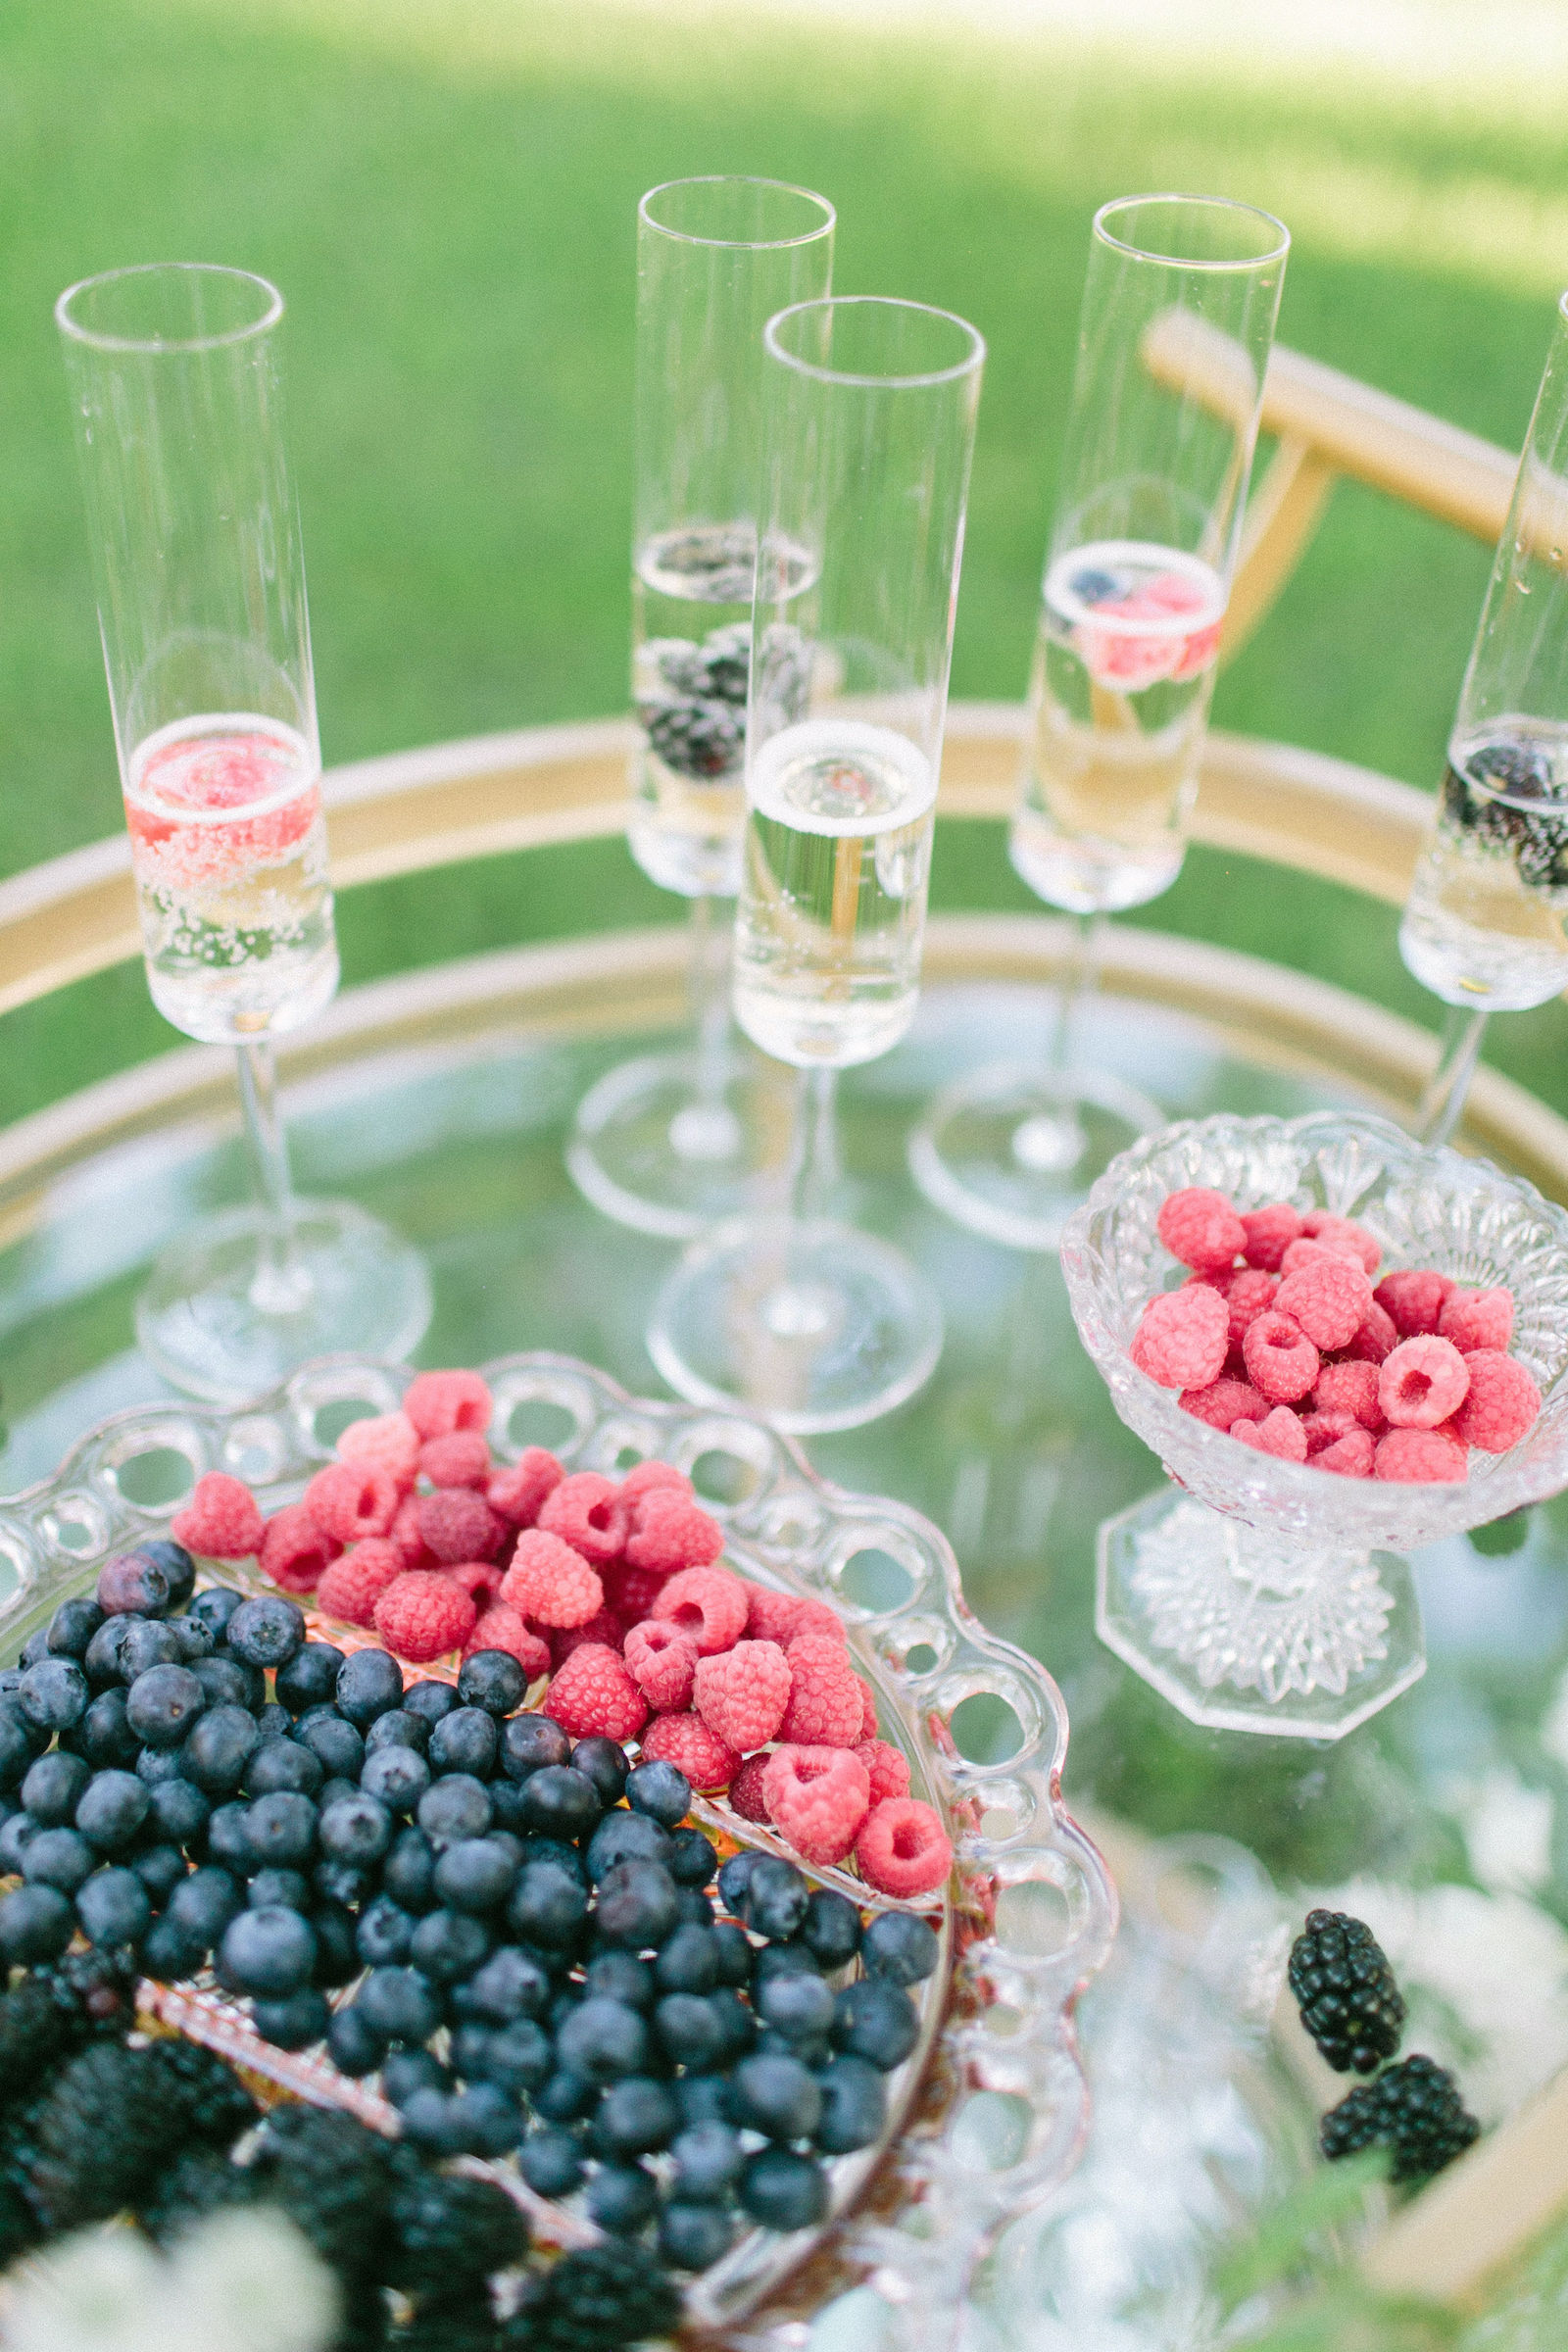 Outdoor Brunch Breakfast Wedding Champagne Cart Bubbly Bar With Gold Vintage Bar Cart With Vintage Glass Trays And Fresh Blackberries Raspberries And Blueberries Marry Me Tampa Bay Local Real Wedding